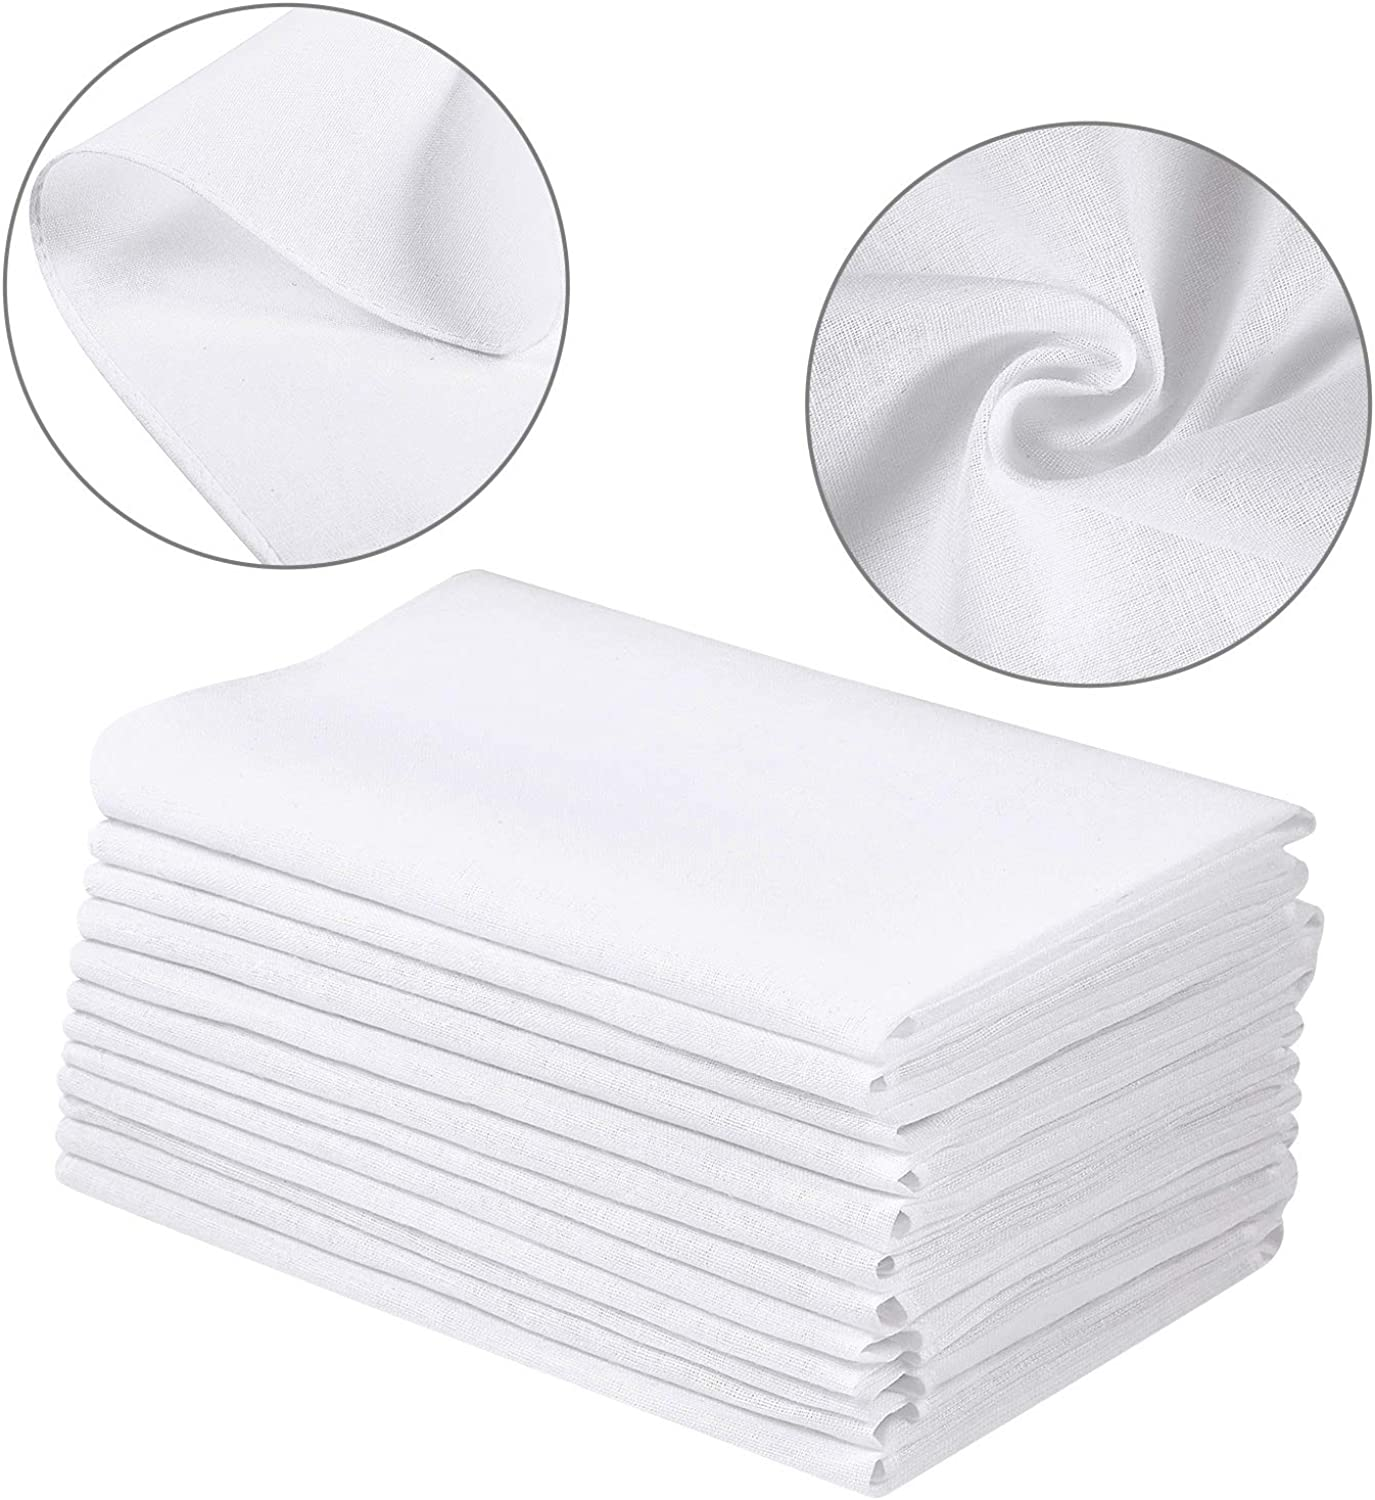 100 Pieces White Handkerchiefs Cotton Classic Hankies Pocket Square Towel Small Size for Kids Girl Boy Tea Parties